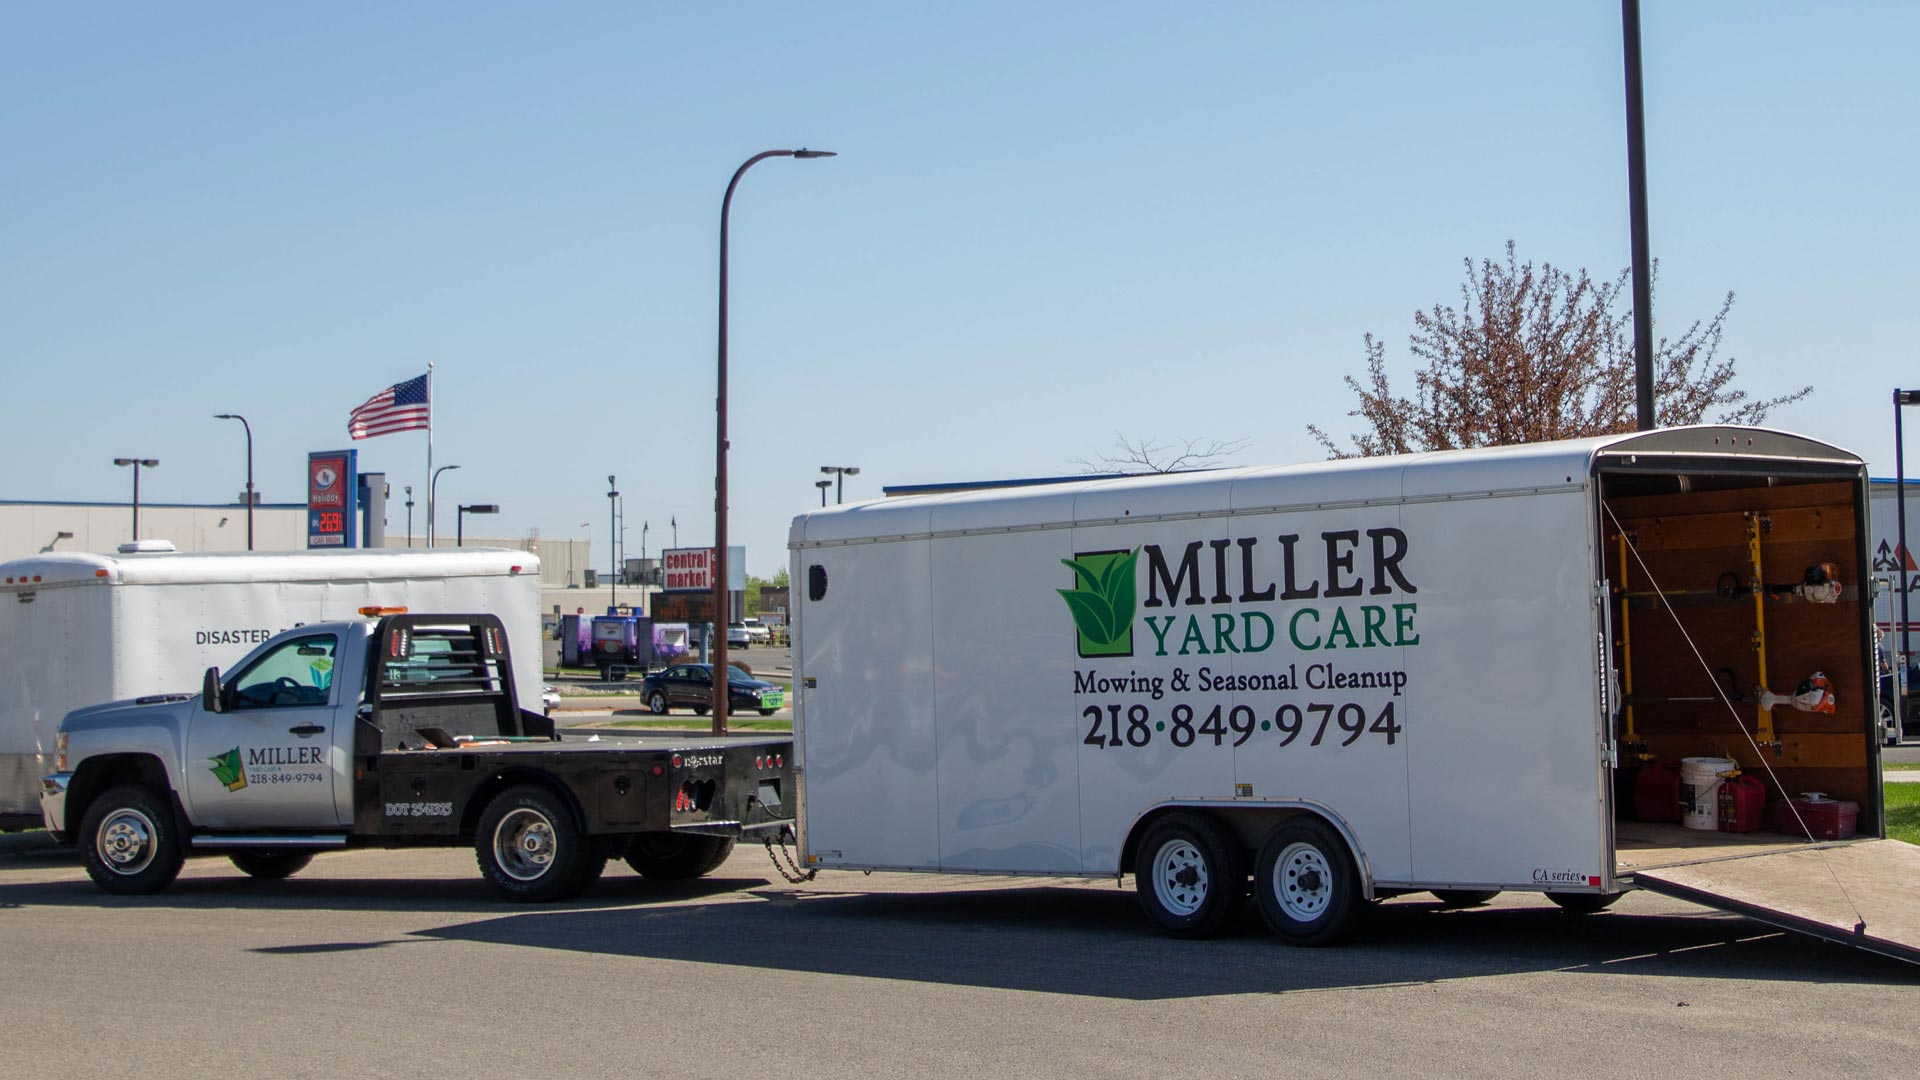 Our teams truck and trailer full of all our lawn equipment to service our clients in and around Detroit Lakes. Minnesota